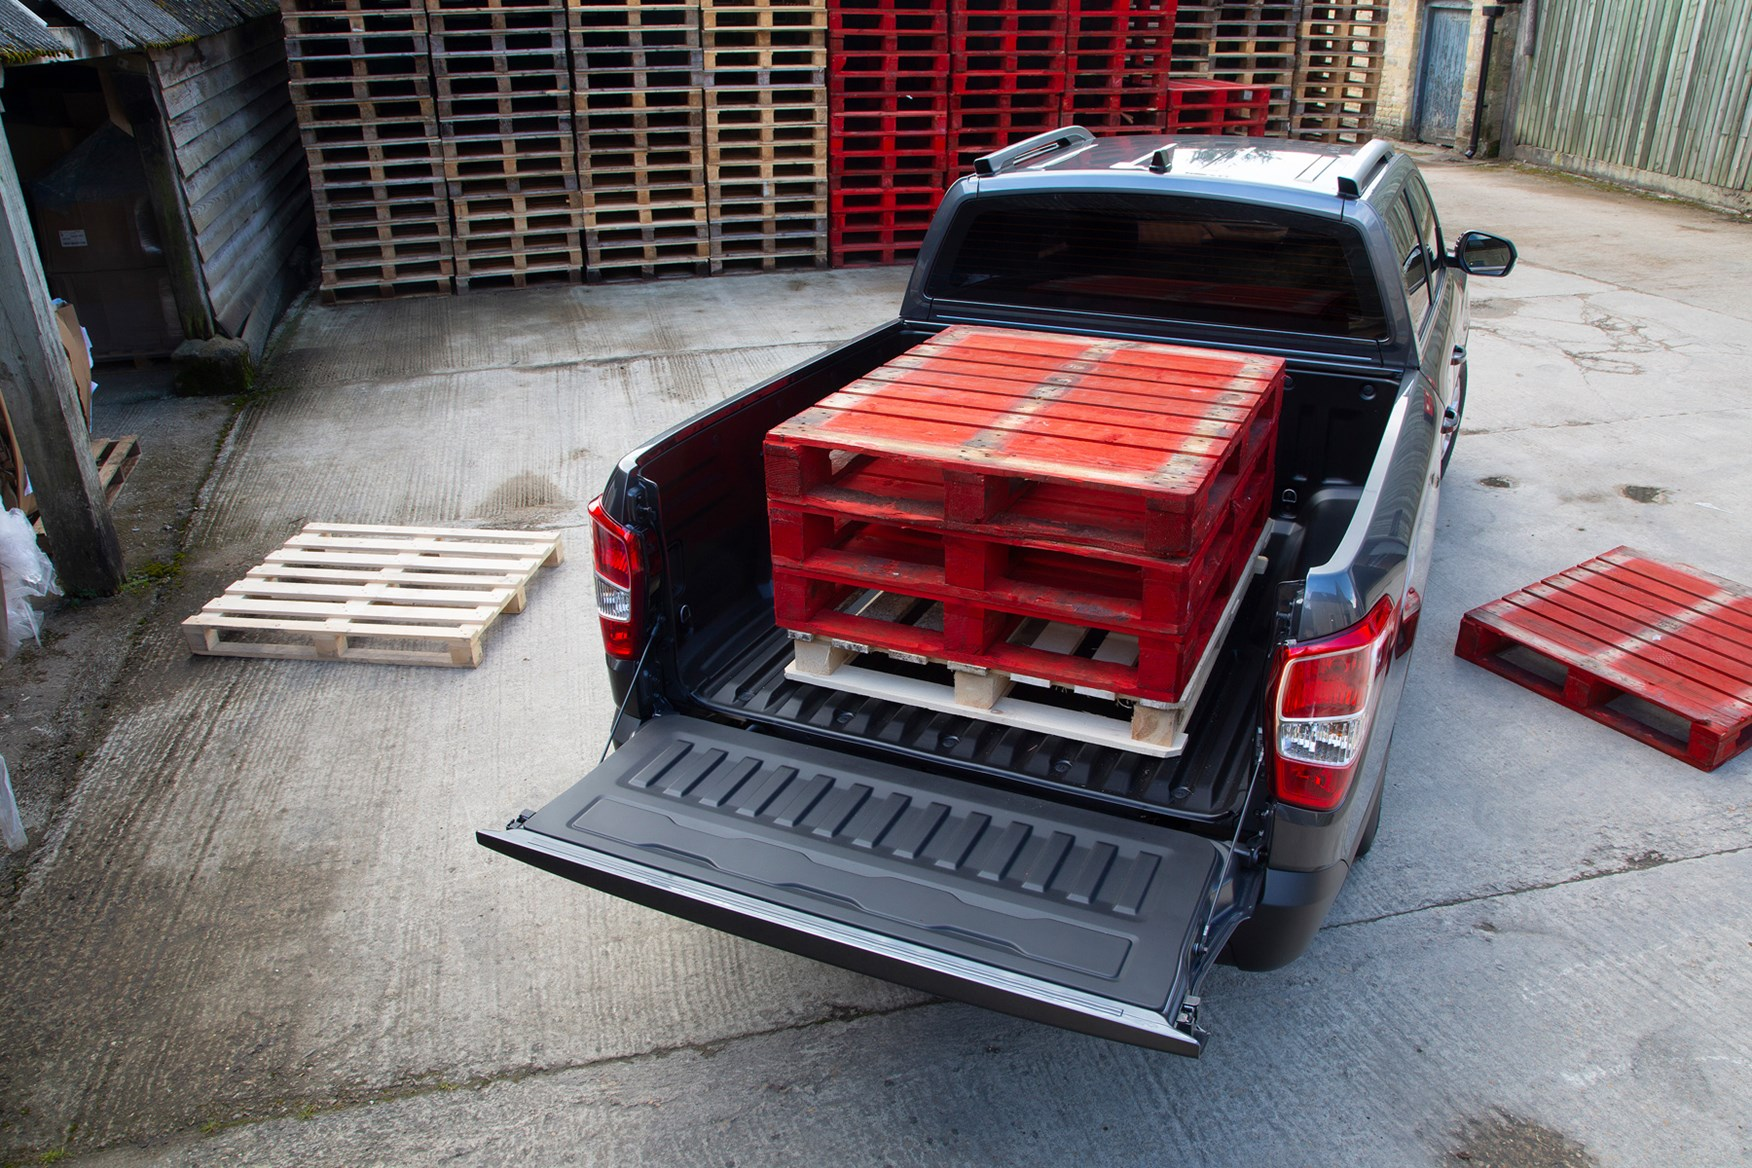 SsangYong Musso review, 2020, Rhino LWB, load area with pallets